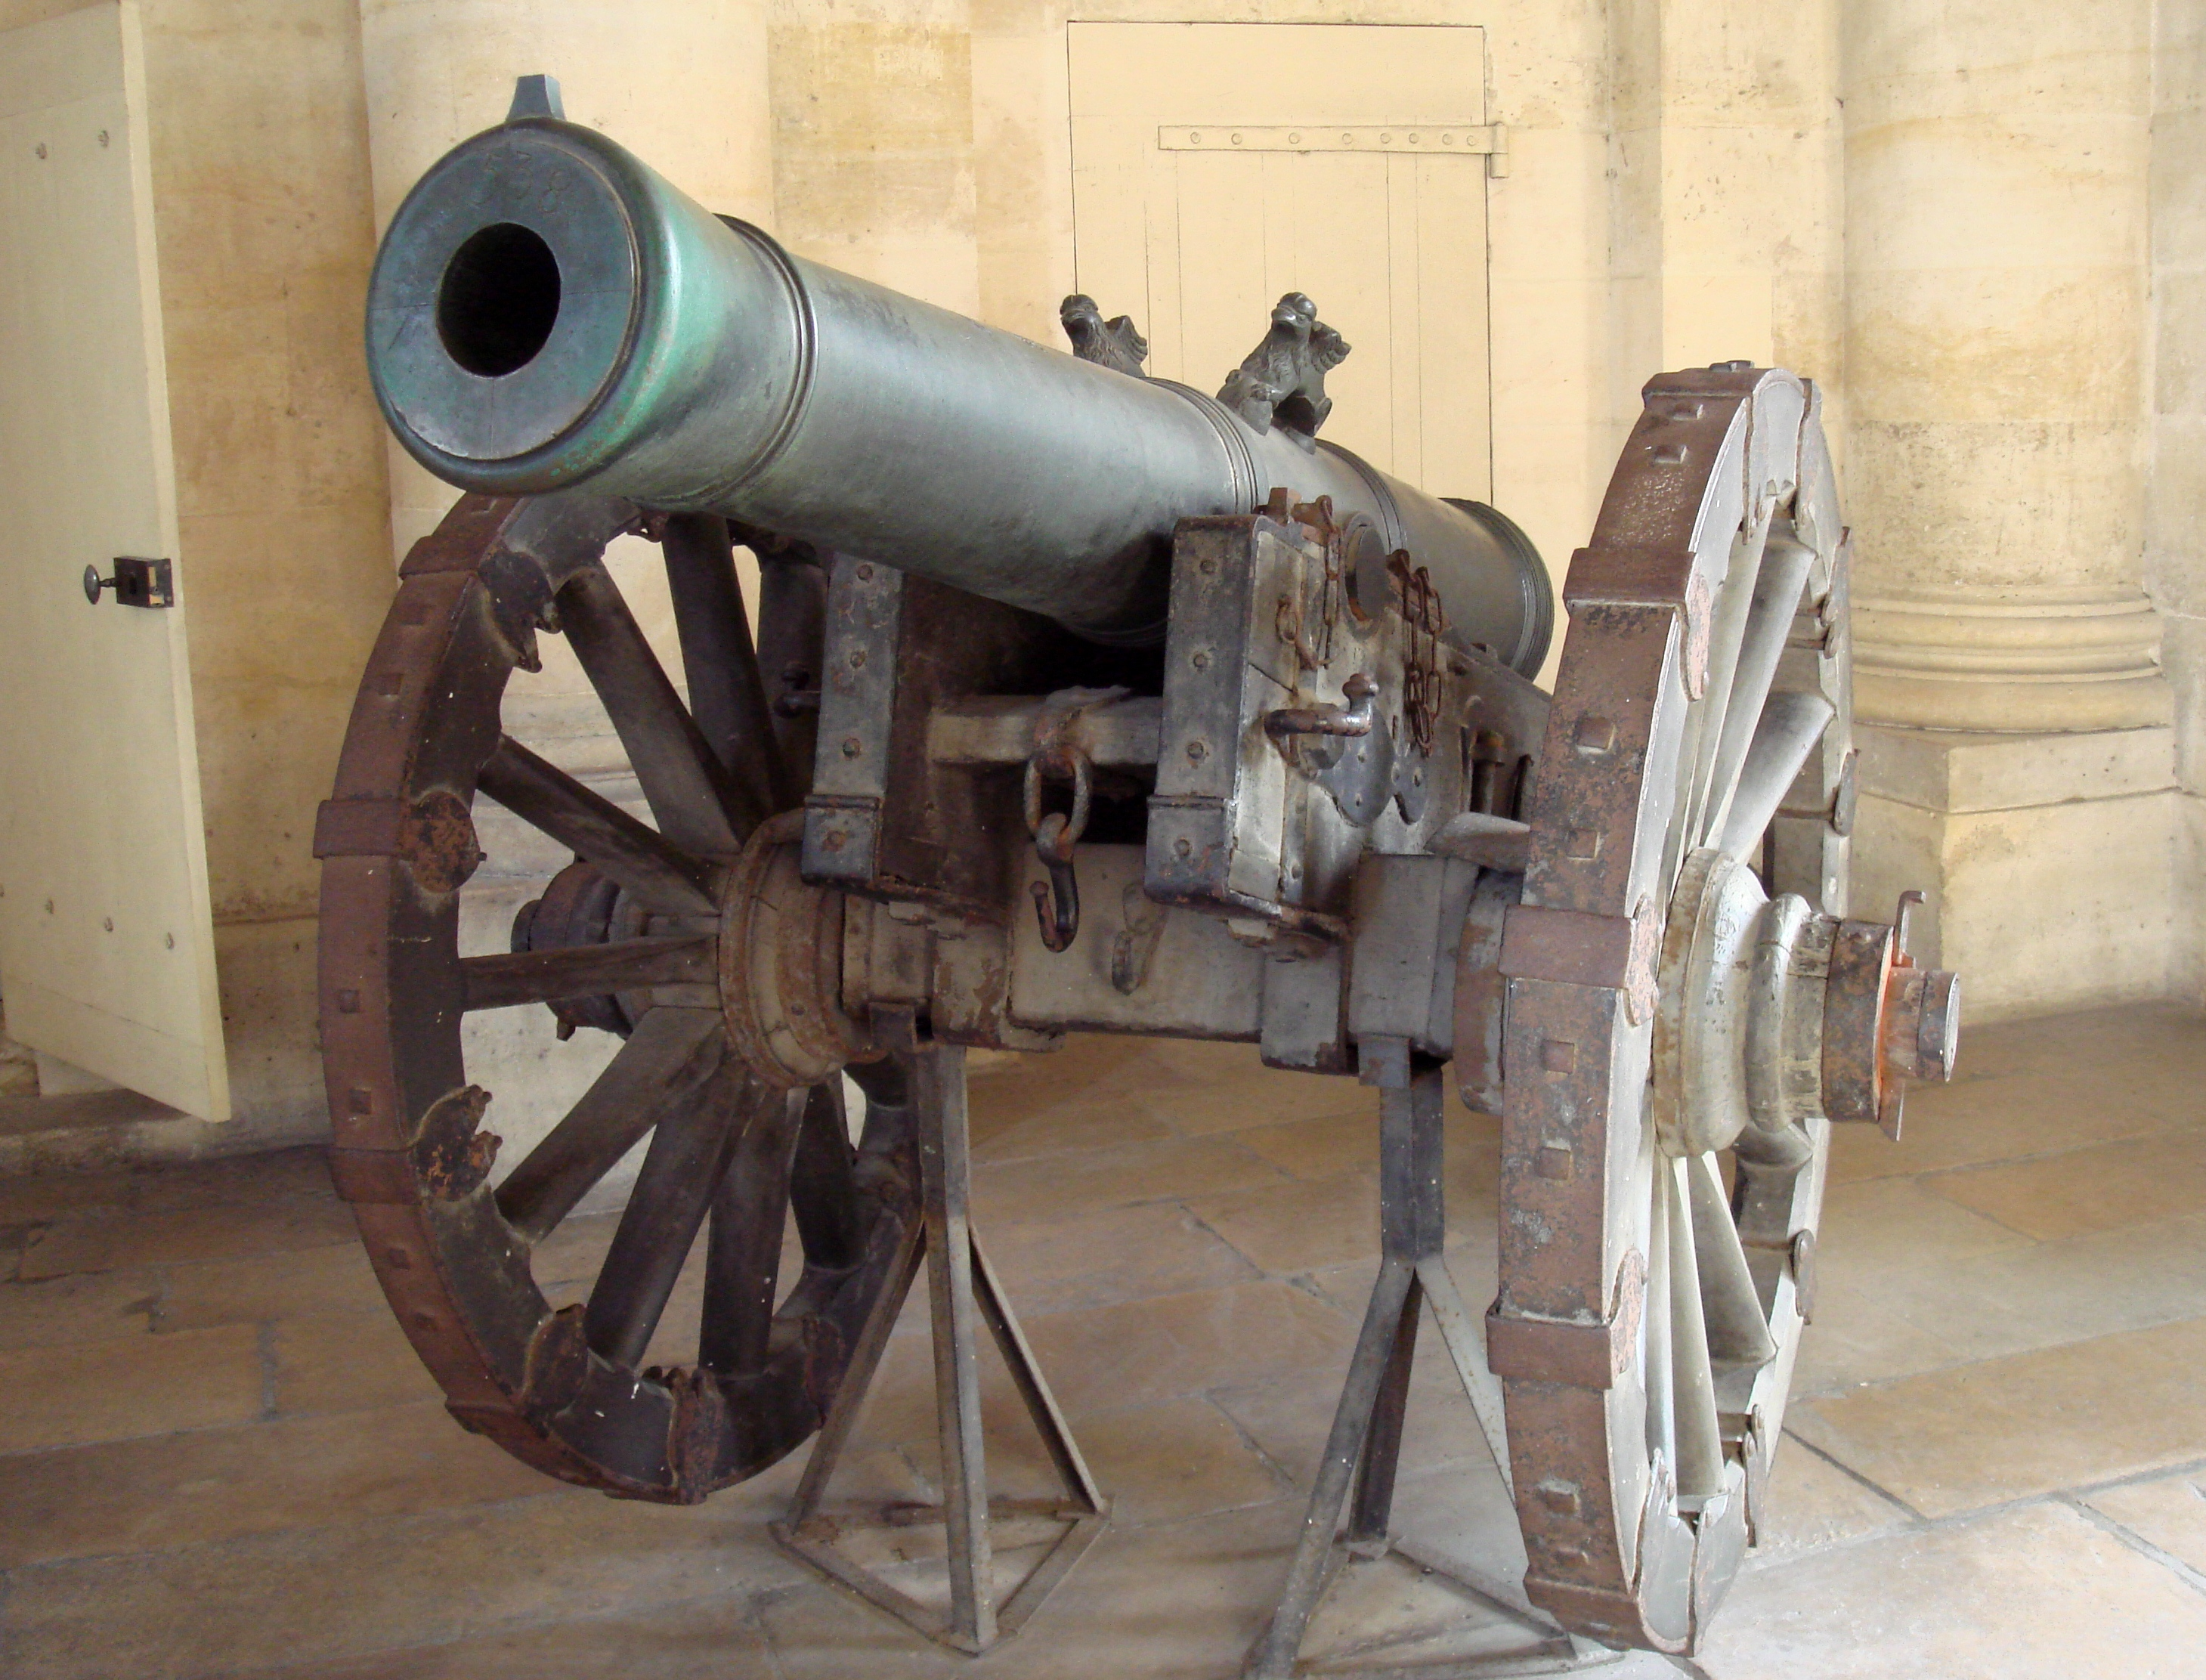 https://upload.wikimedia.org/wikipedia/commons/9/9a/Canon_Gribeauval_1780_front.jpg